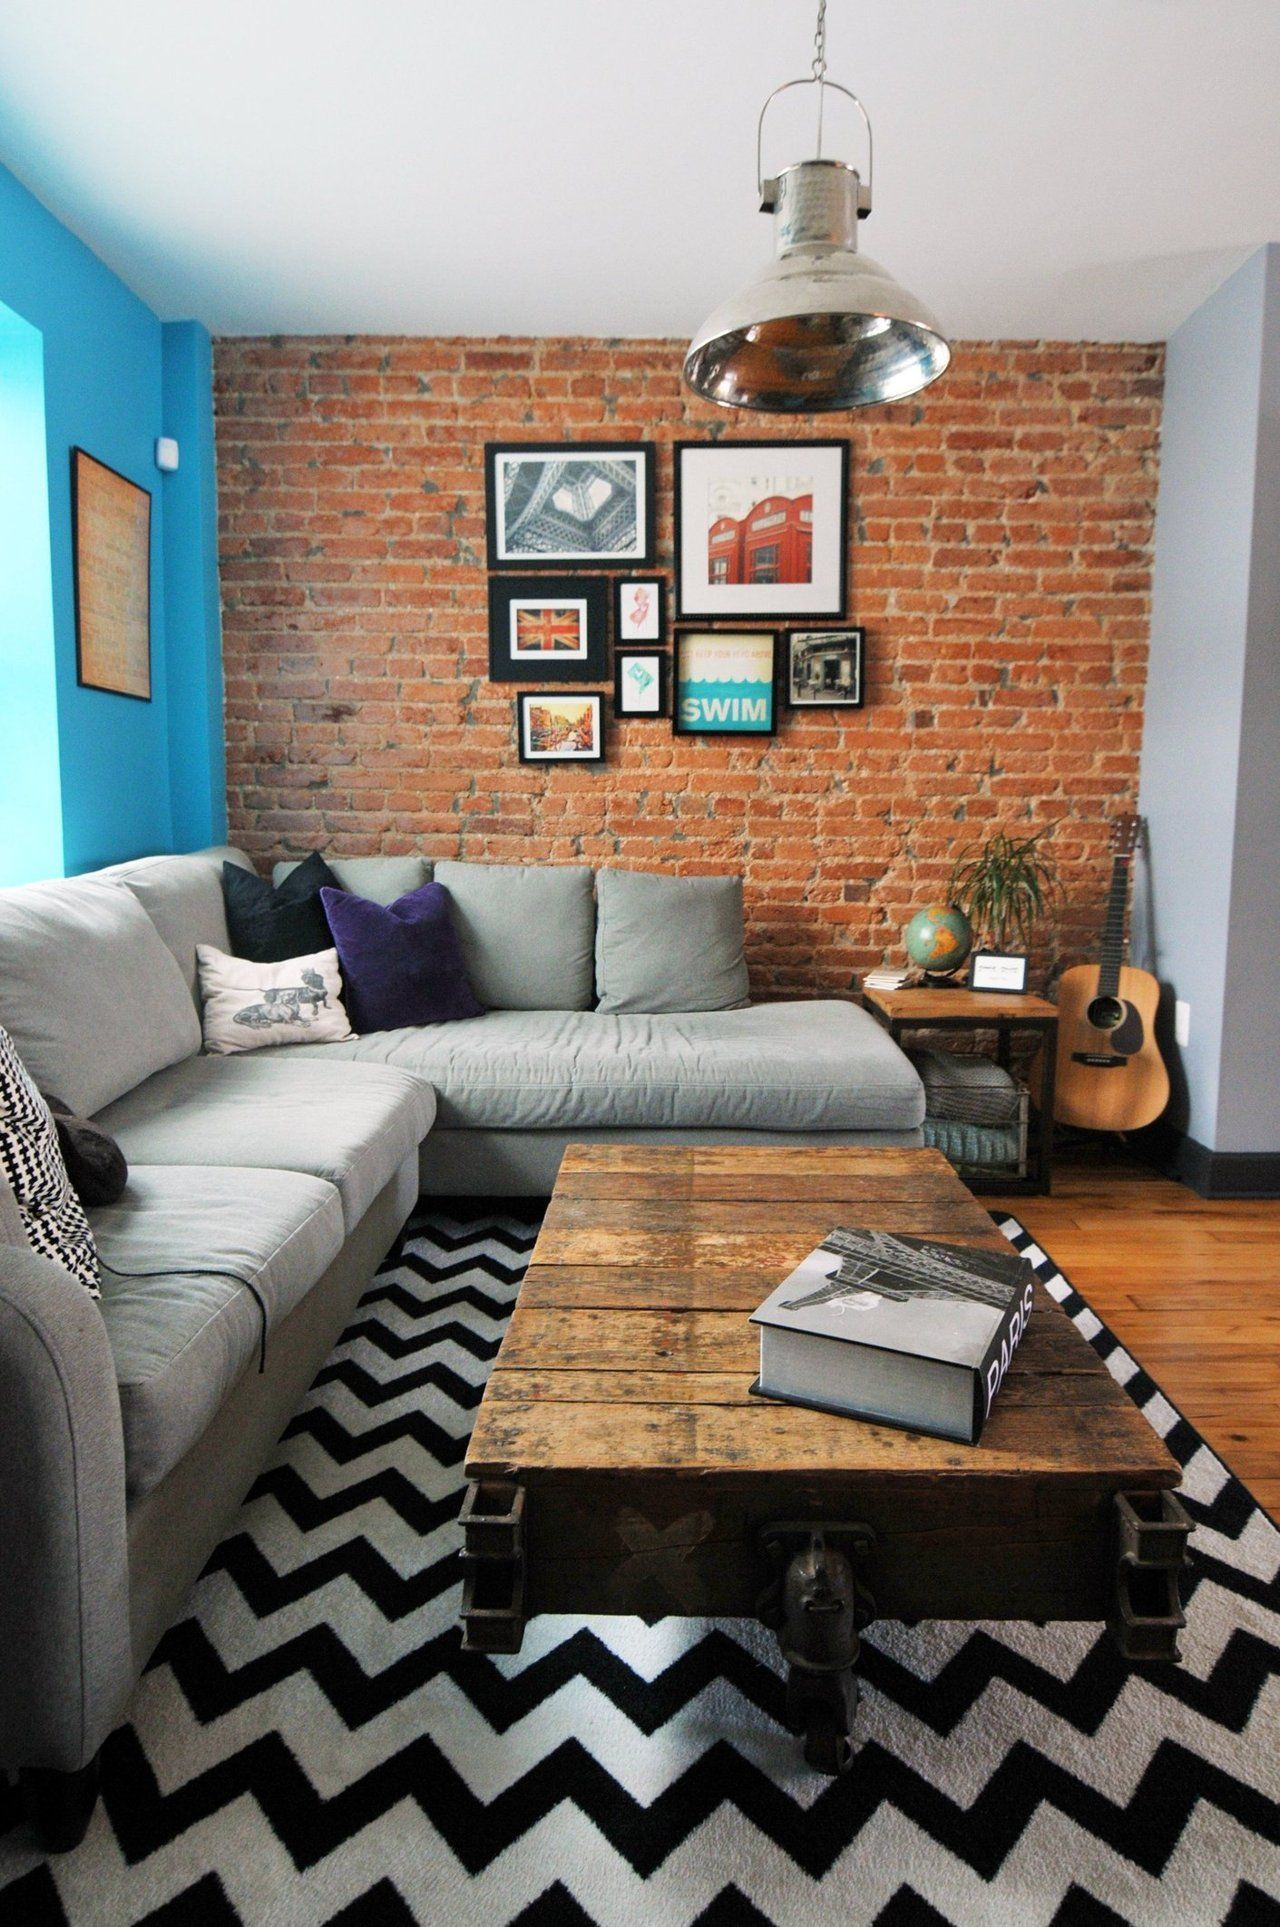 Bree & Andy s DC Home Hits the Bright Spot I don t mind the